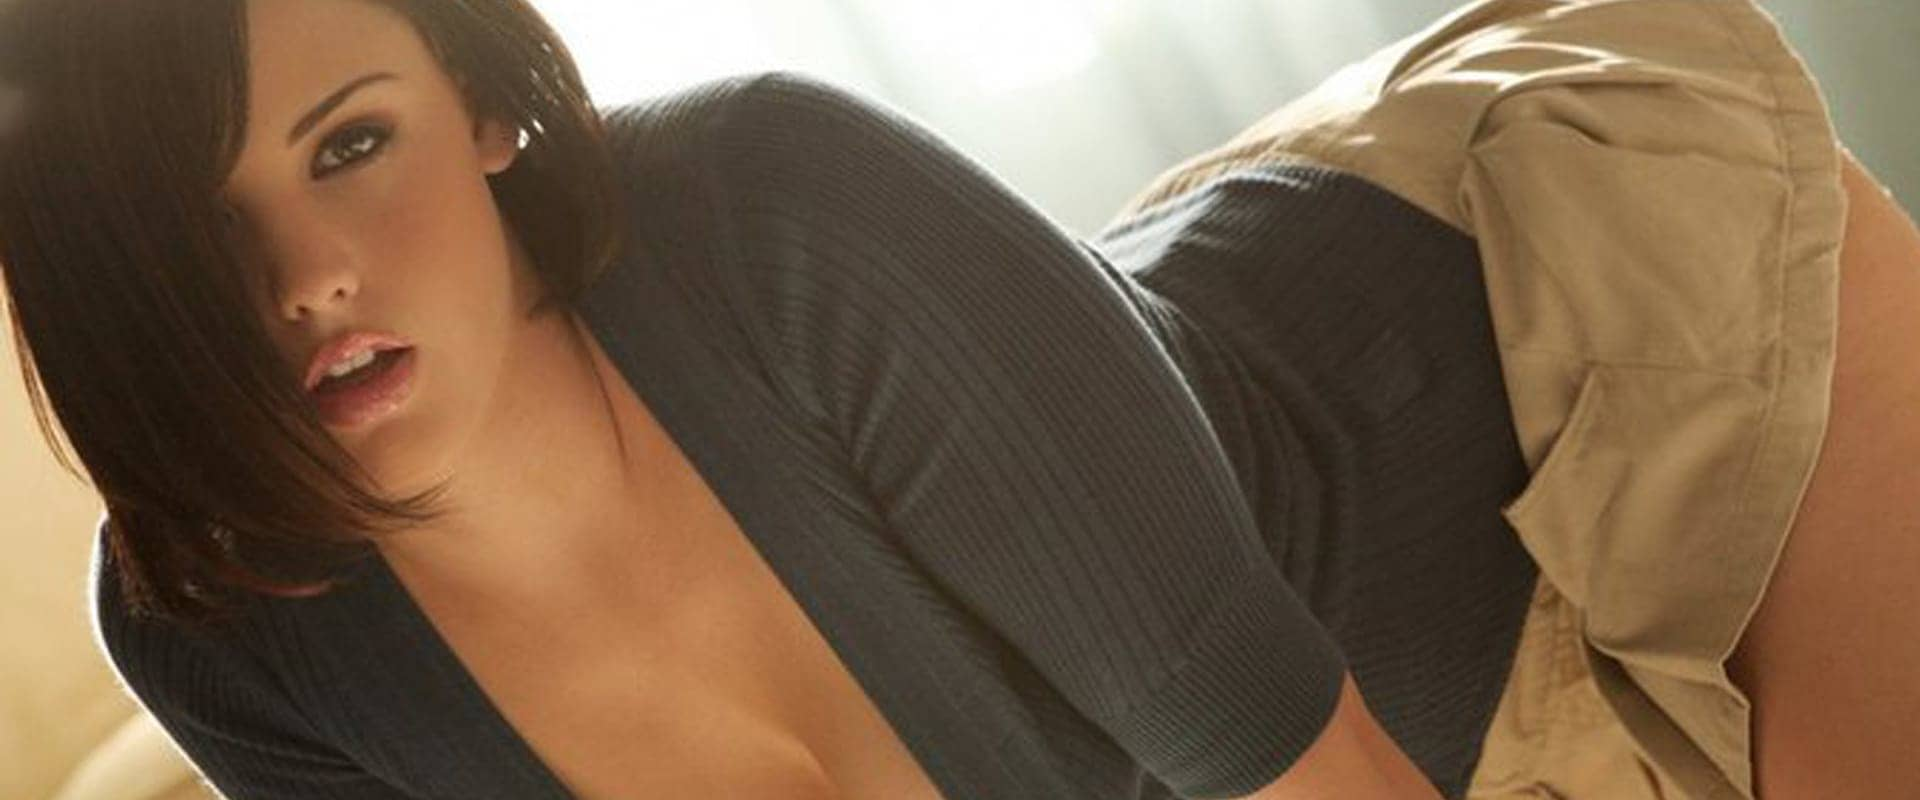 Airhostess Escorts in Noida